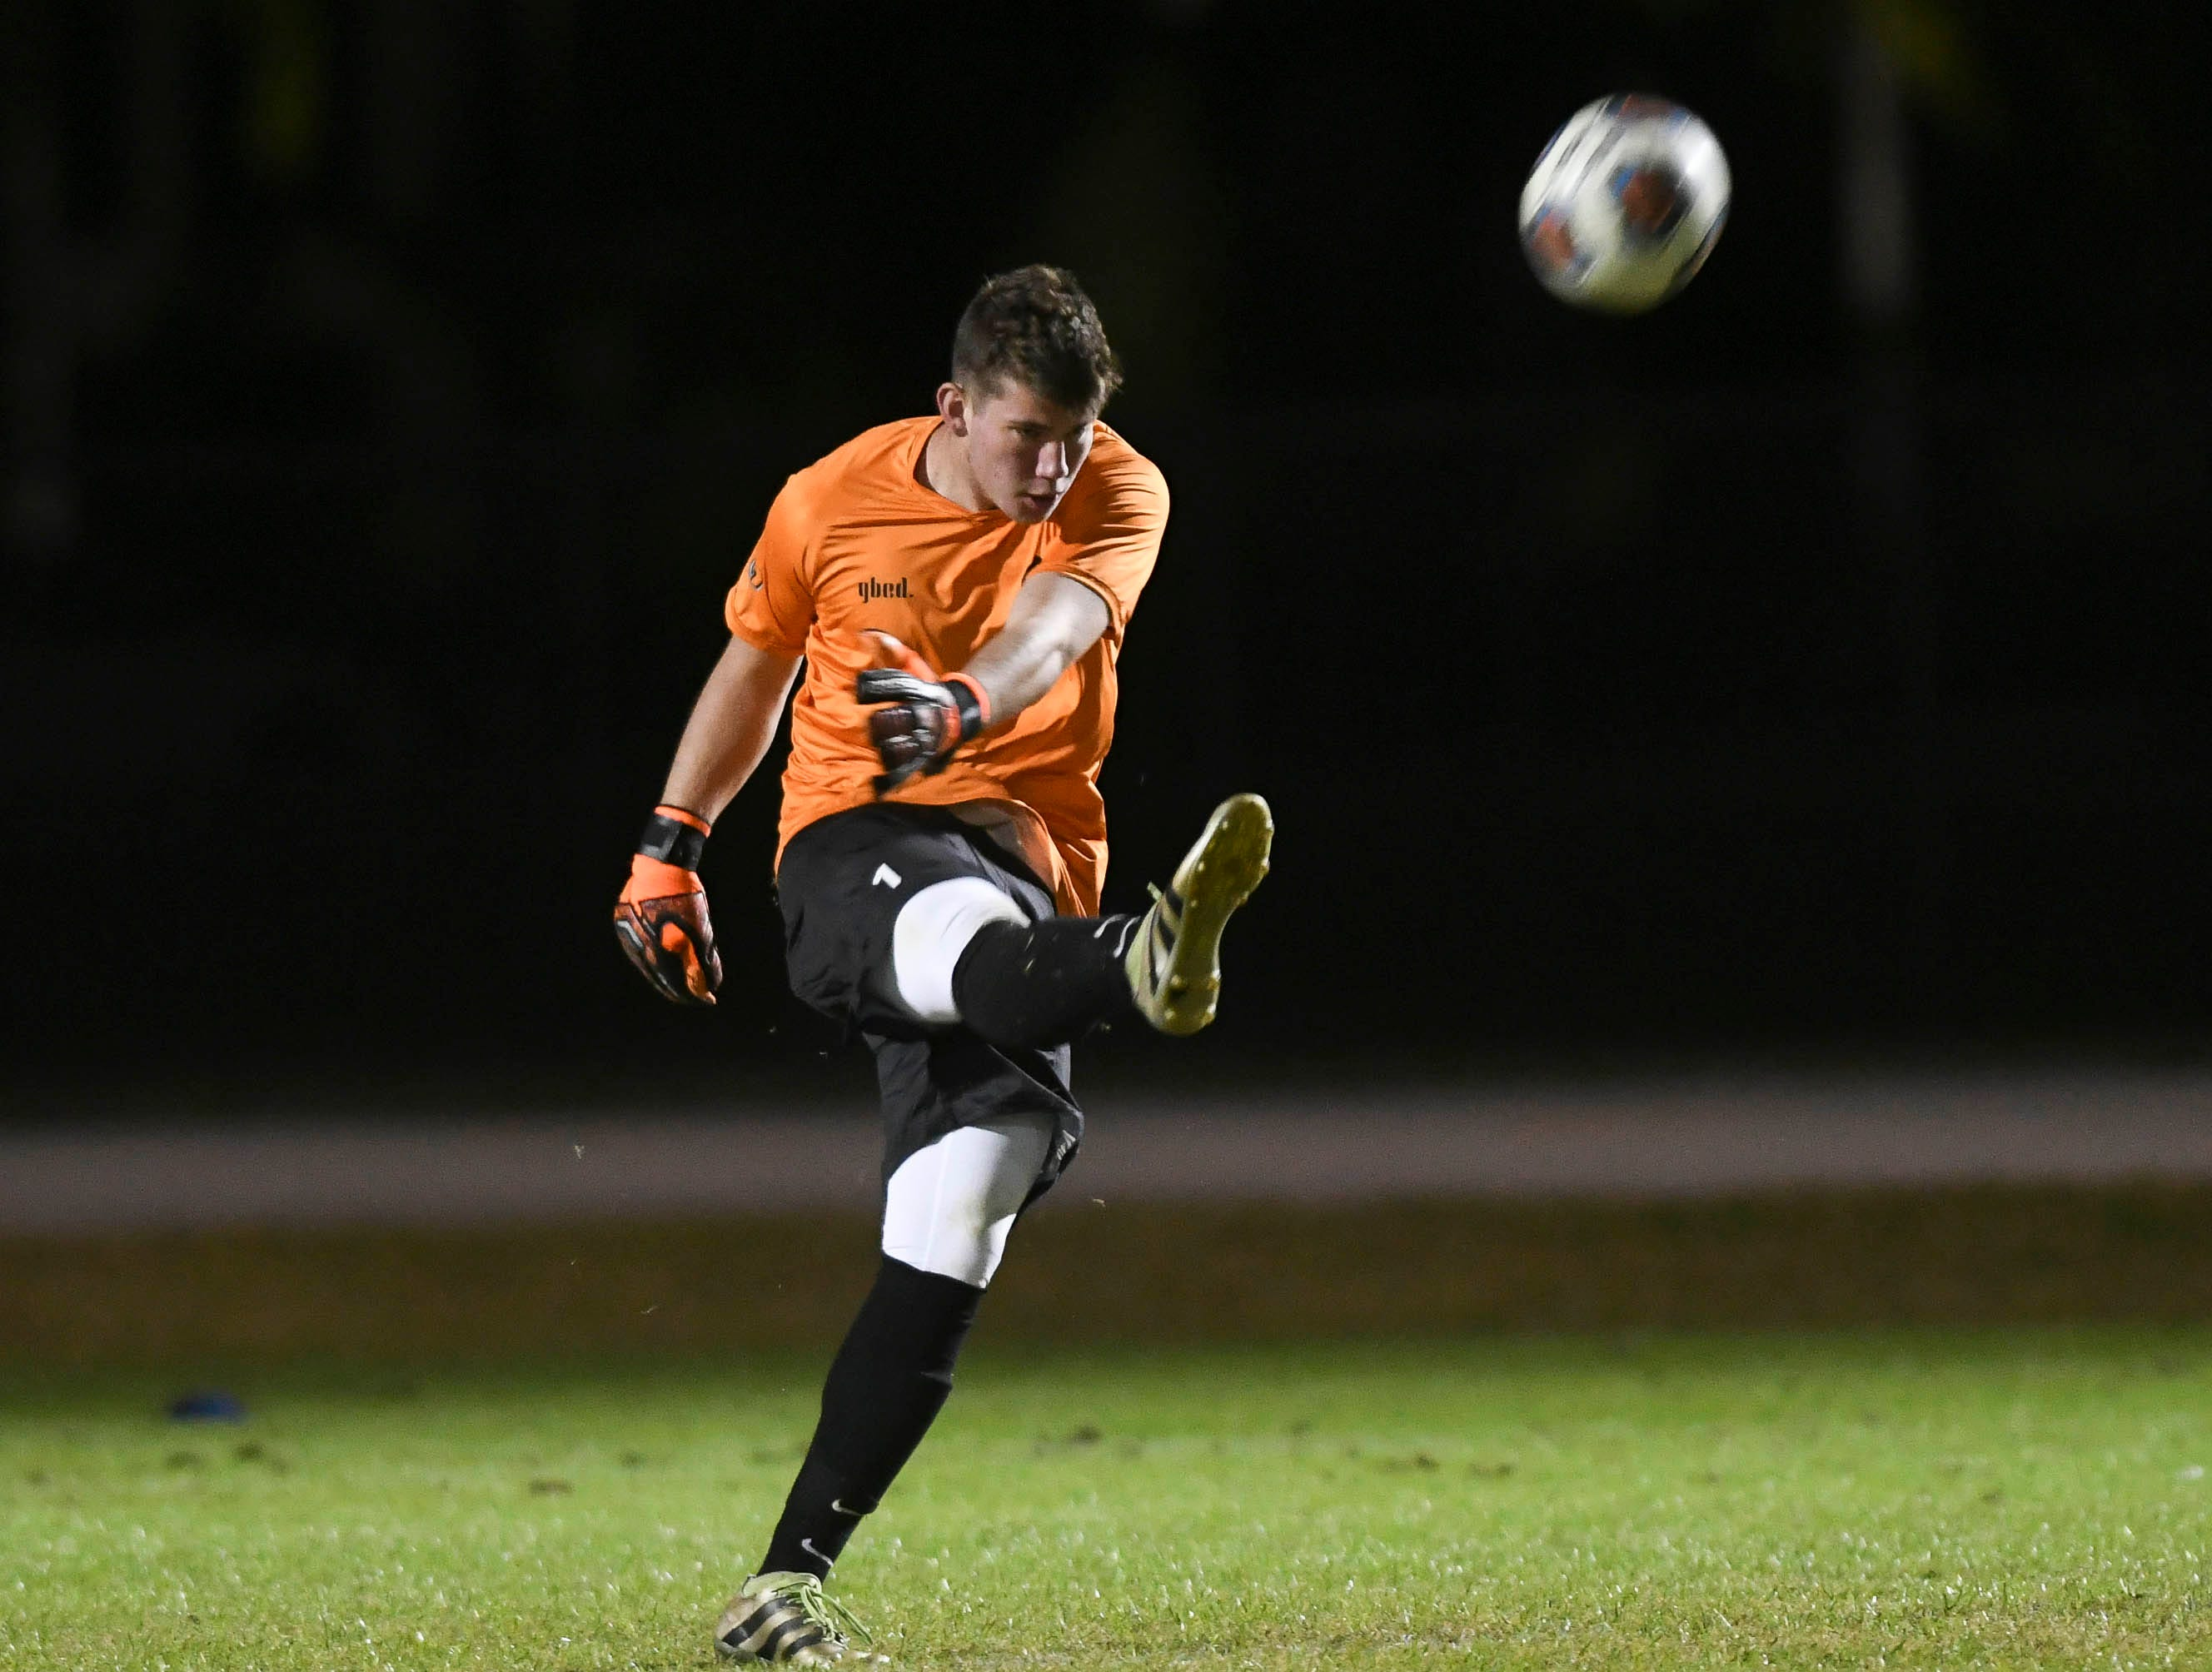 Viera goalkeeper James Leonard sends the ball downfield during Friday's game against MCC.